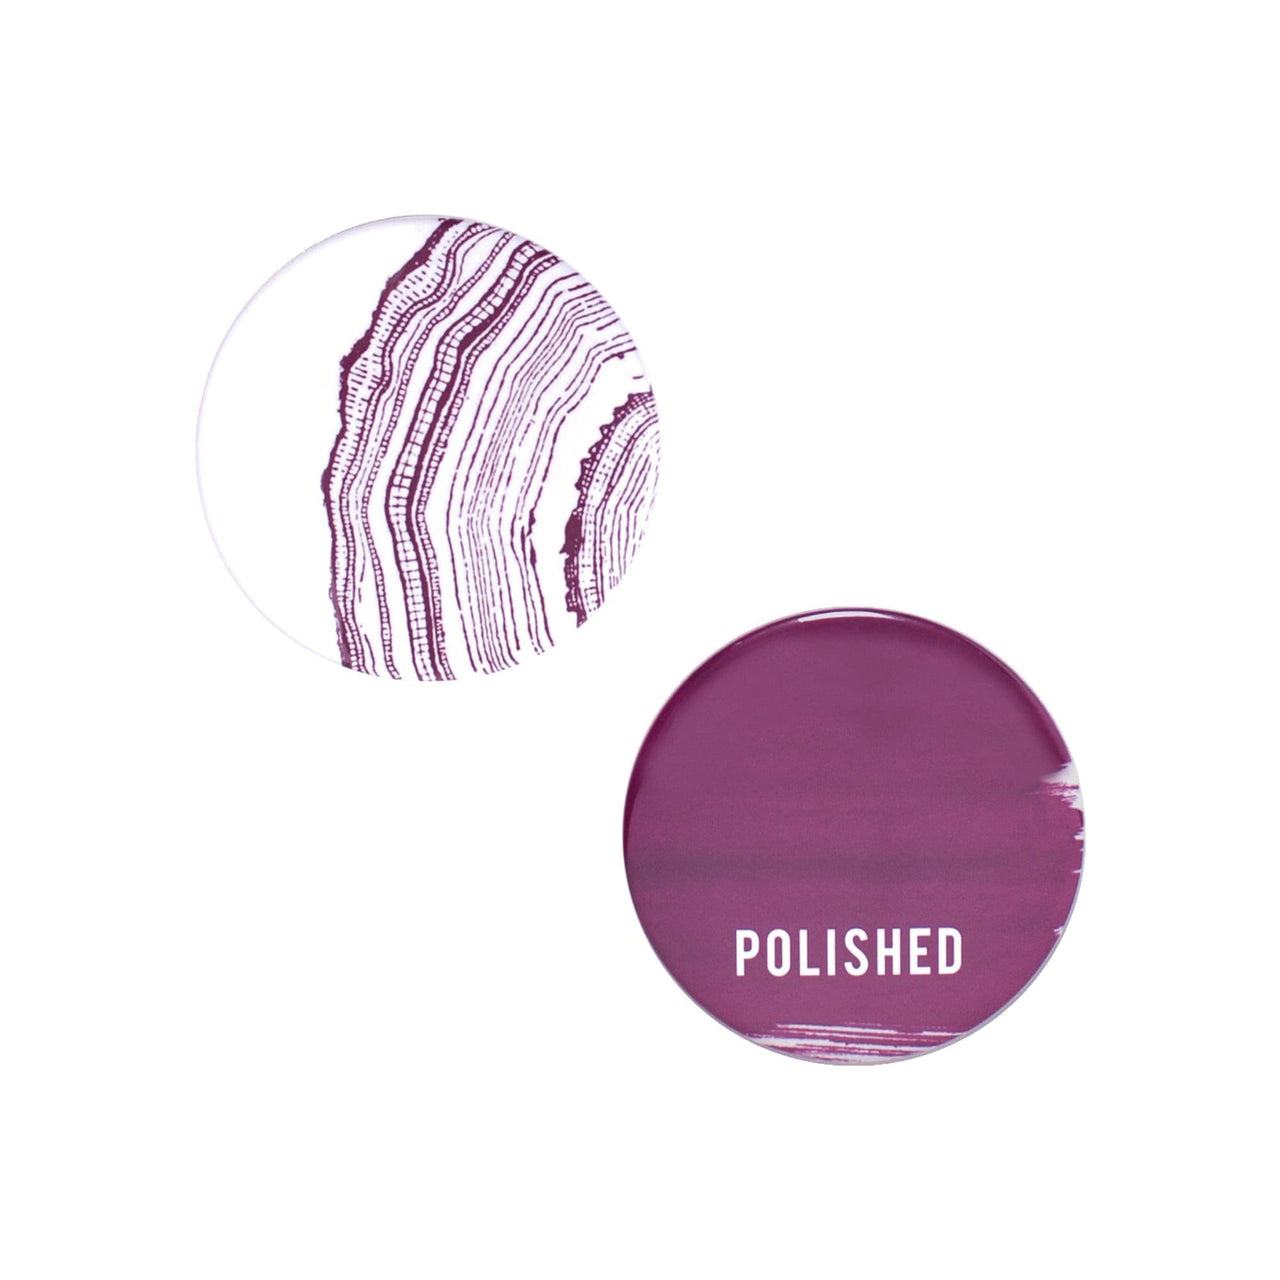 ODEME Beauty & Wellness Polished Button Mirror Set